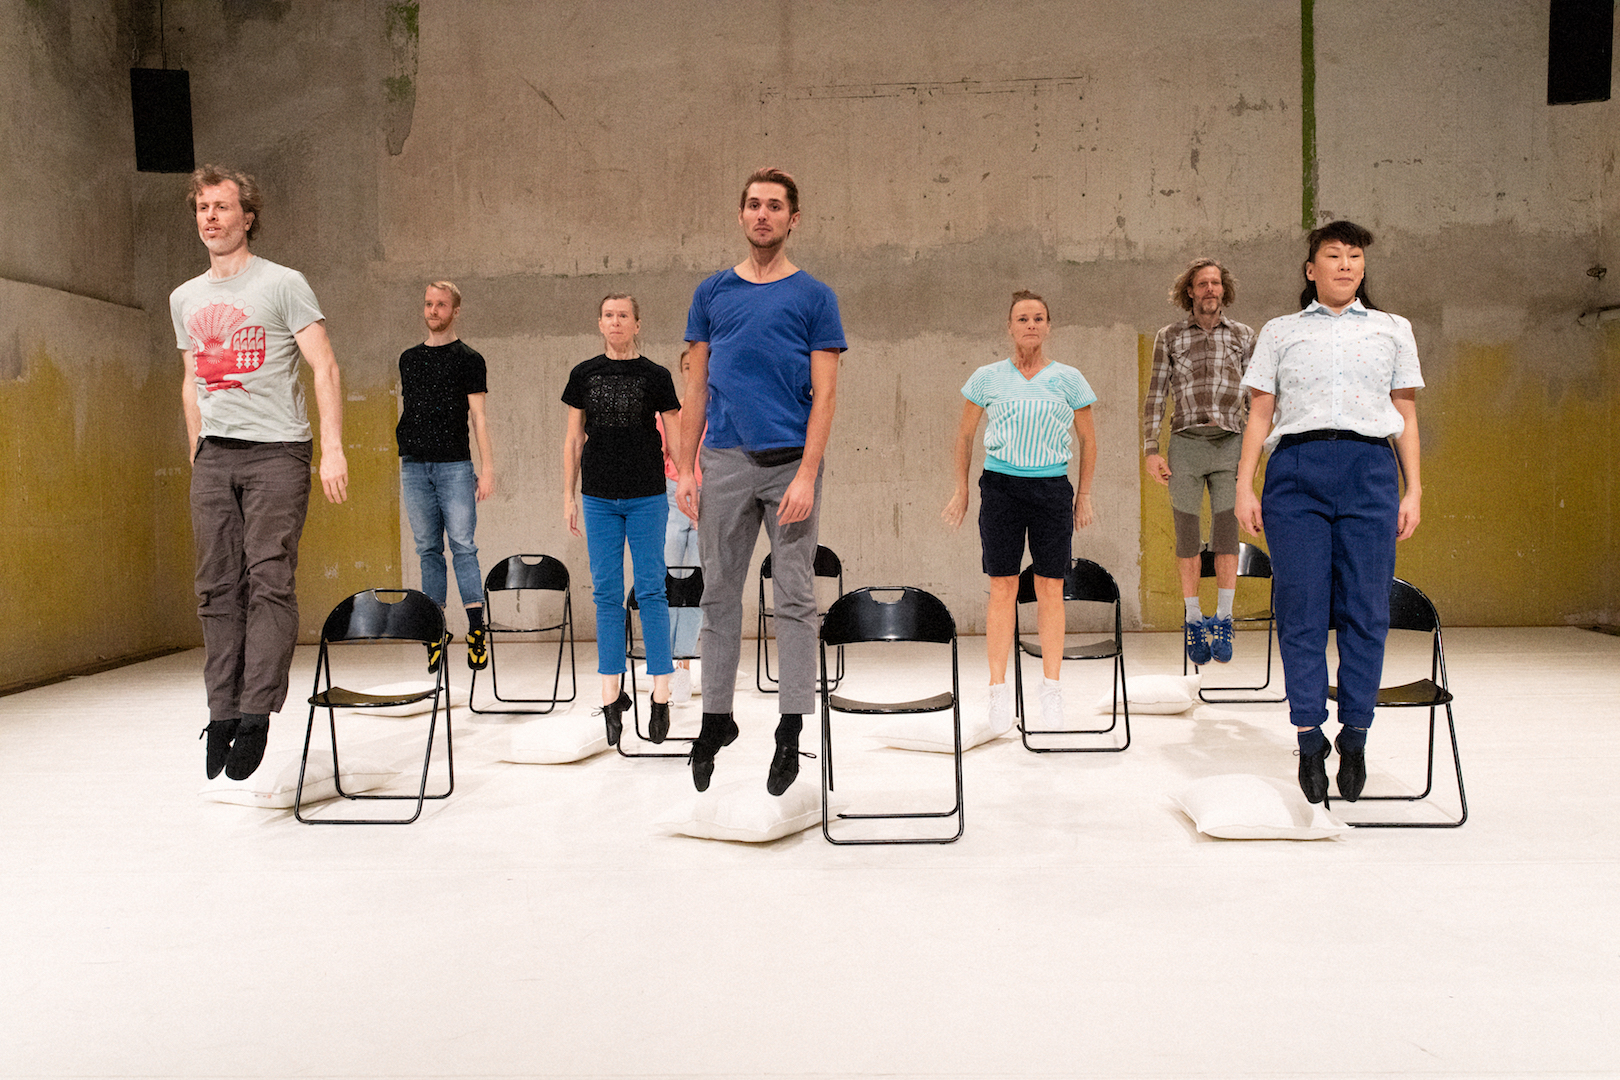 Yvonne Rainer + Weld Company: Again? What now?